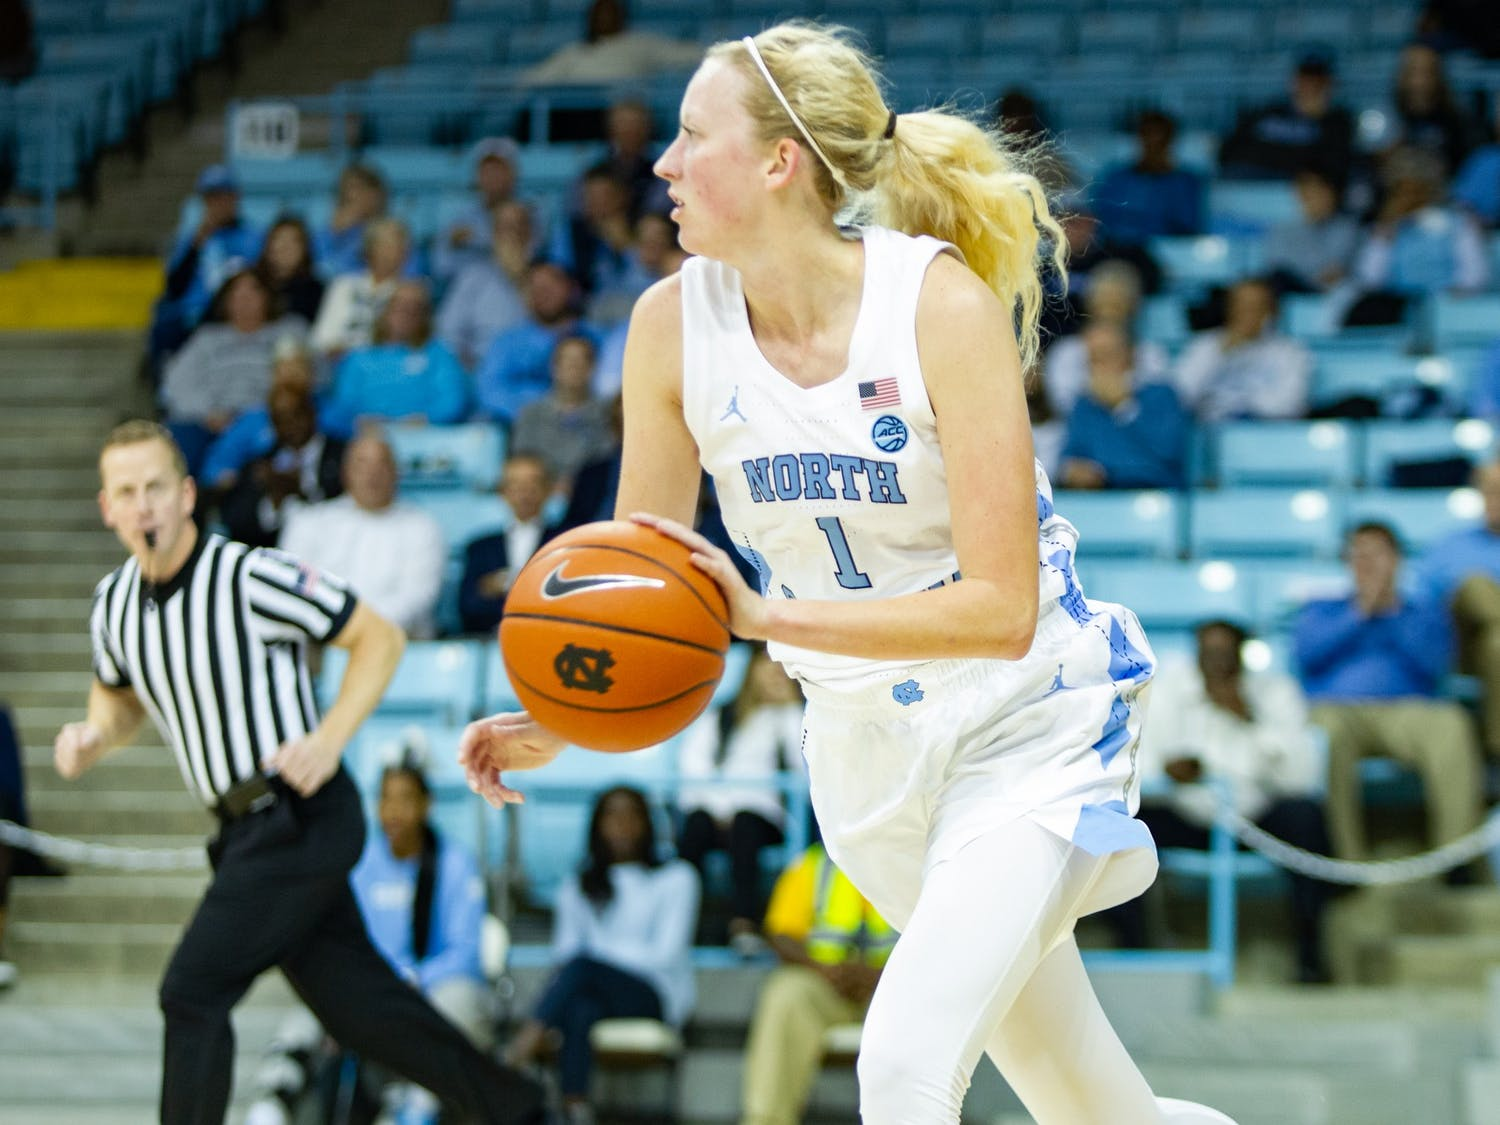 UNC's senior guard Taylor Koenen (1) dribbles the ball down the court during a game at Carmichael Arena on Monday, Nov. 11, 2019. UNC beat Navy 80-40.